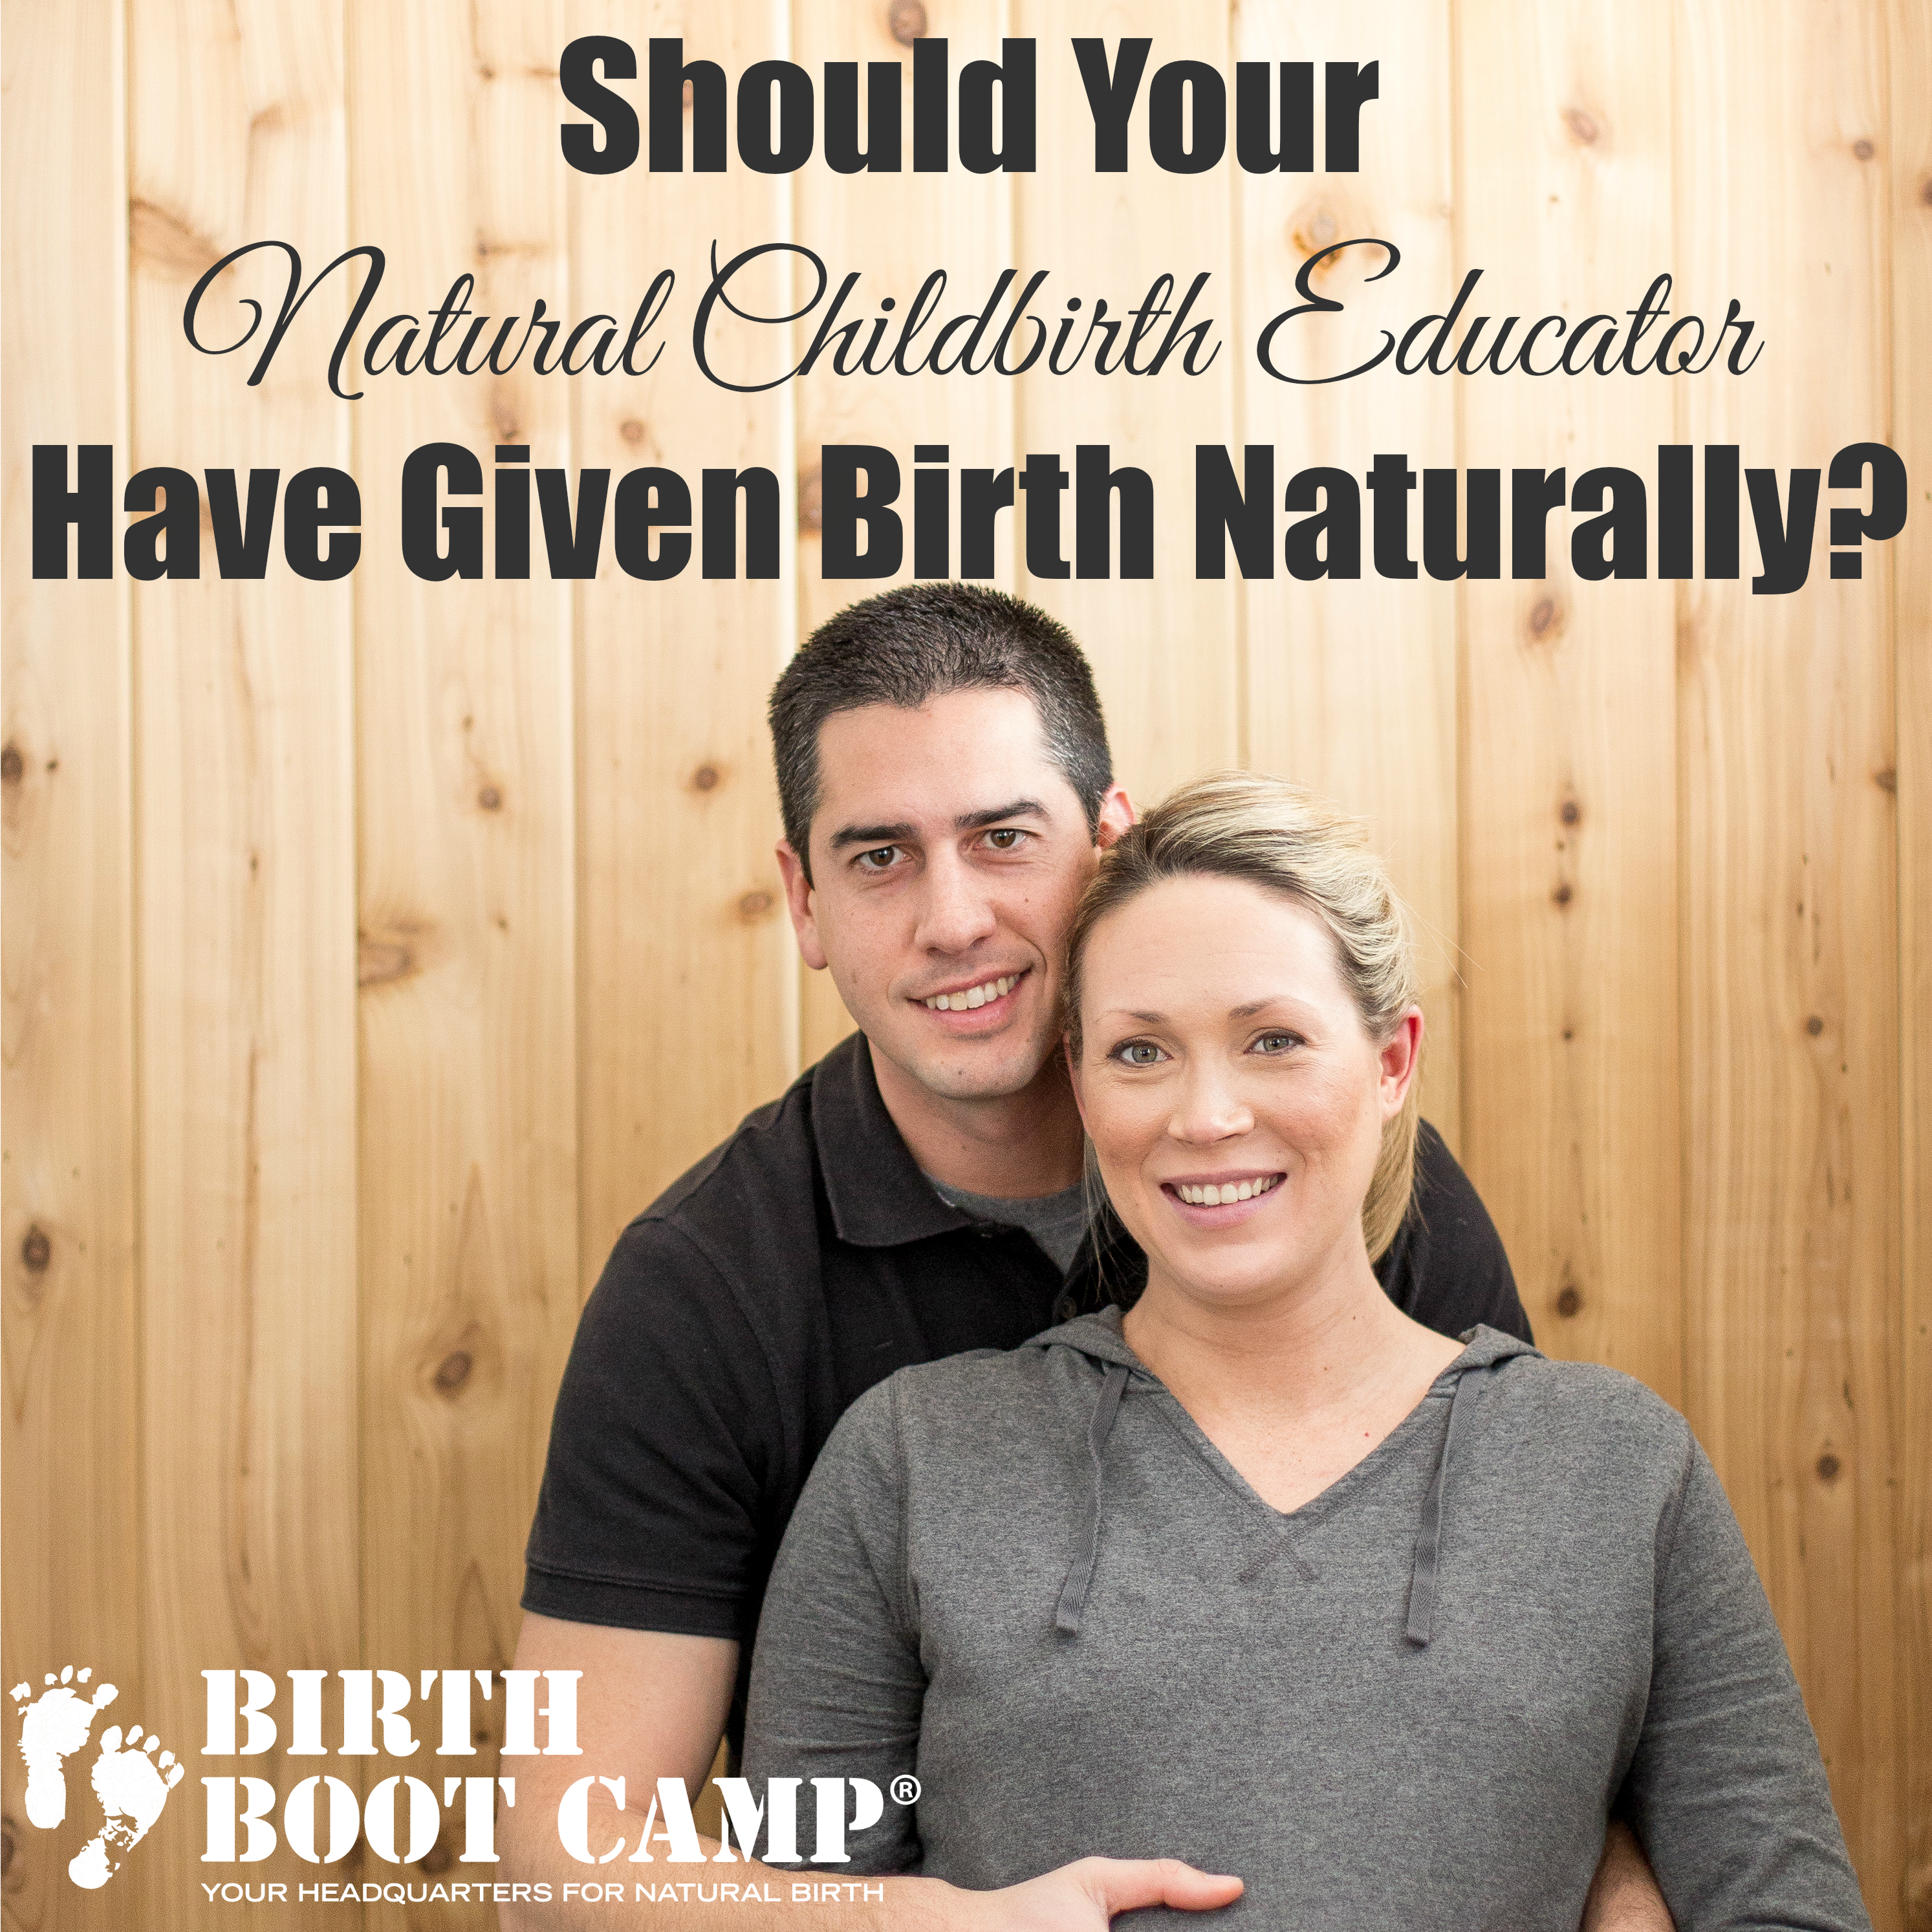 Should Your Natural Childbirth Educator Have Given Birth Naturally?